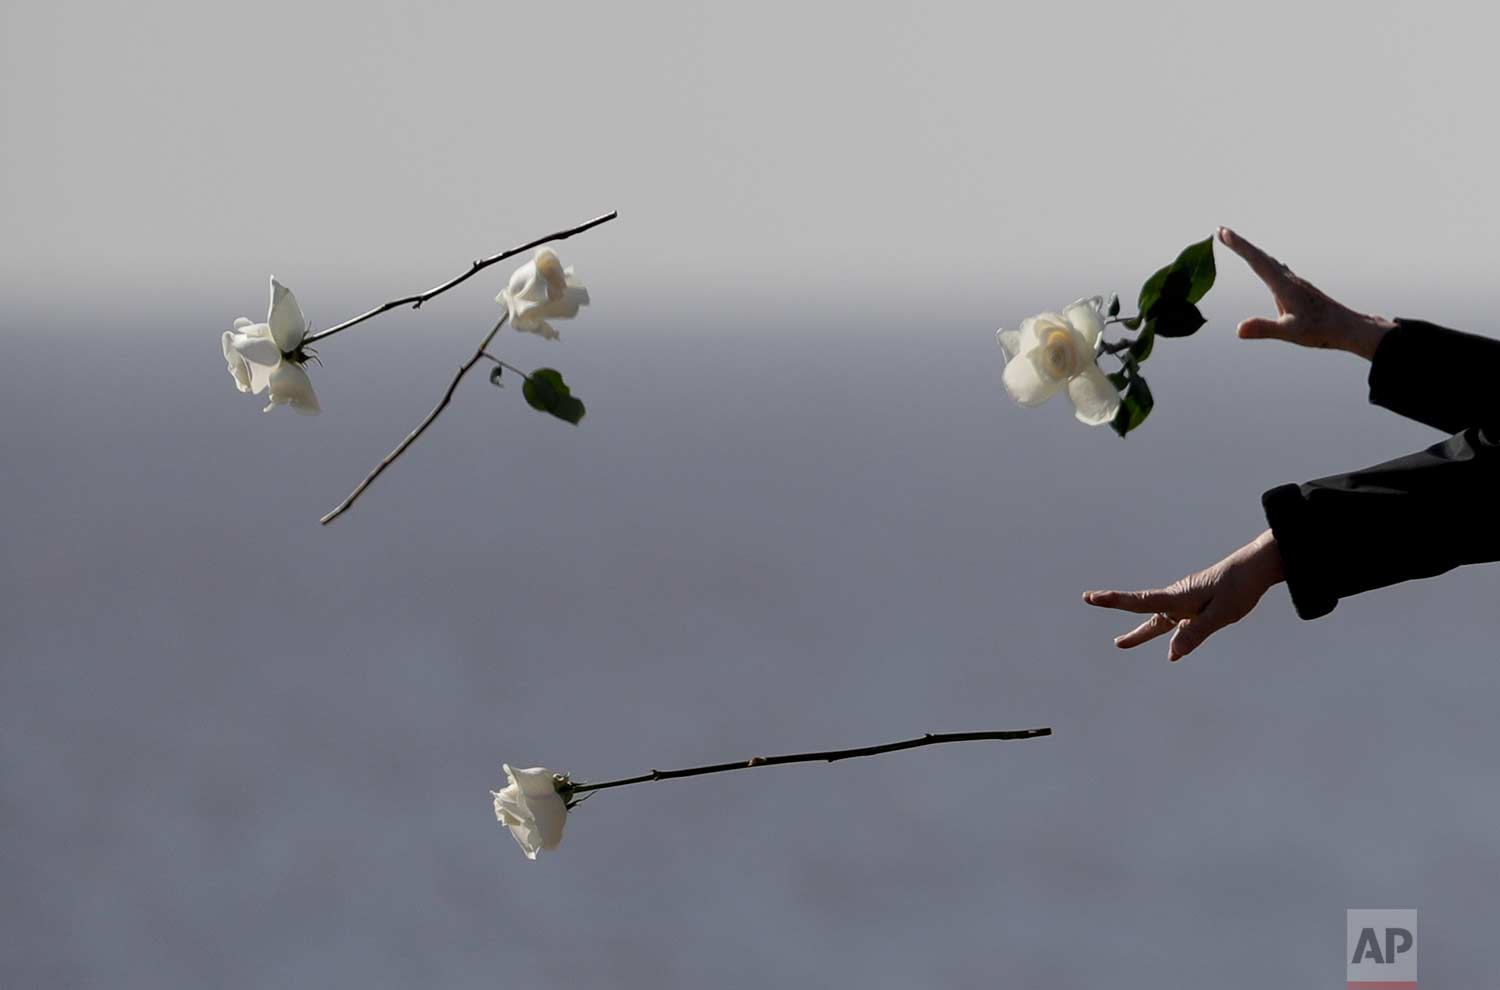 Chile's President Michelle Bachelet, bottom, throws a flower in the river during a visit to Memory Park which honors the victims of the country's dictatorship, in Buenos Aires, Argentina, Thursday, July 20, 2017. (AP Photo/Natacha Pisarenko)